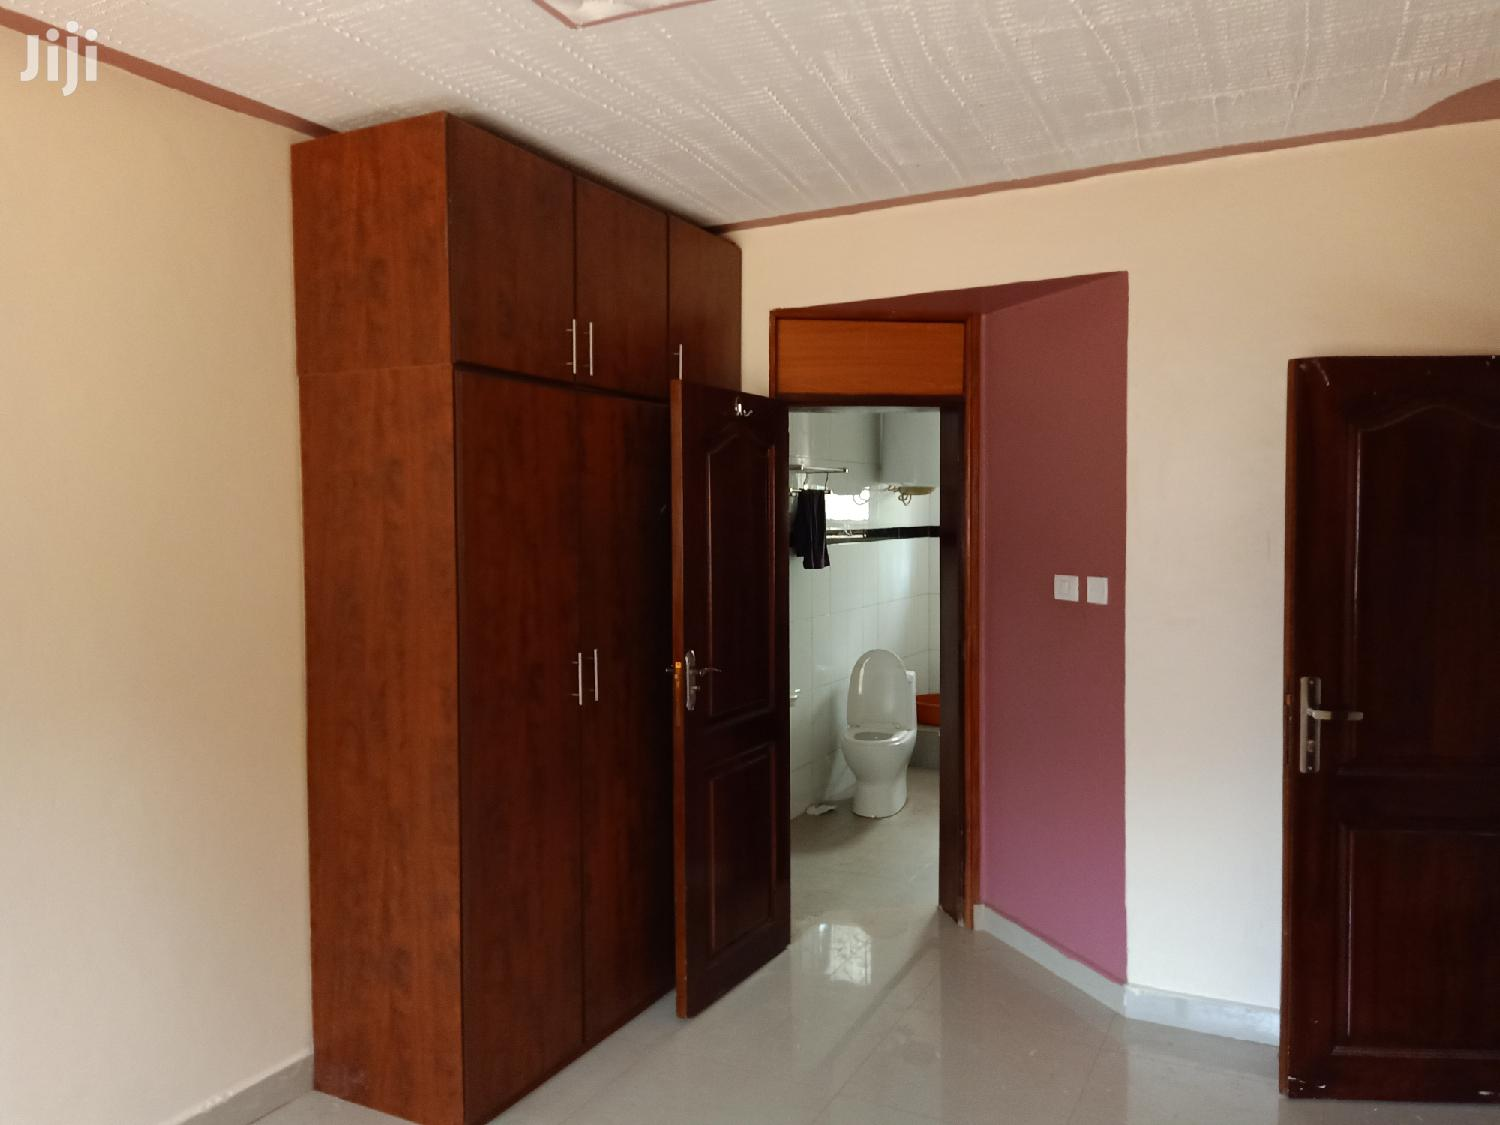 Kireka 2bedroom Apartment For Rent E | Houses & Apartments For Rent for sale in Kampala, Central Region, Uganda